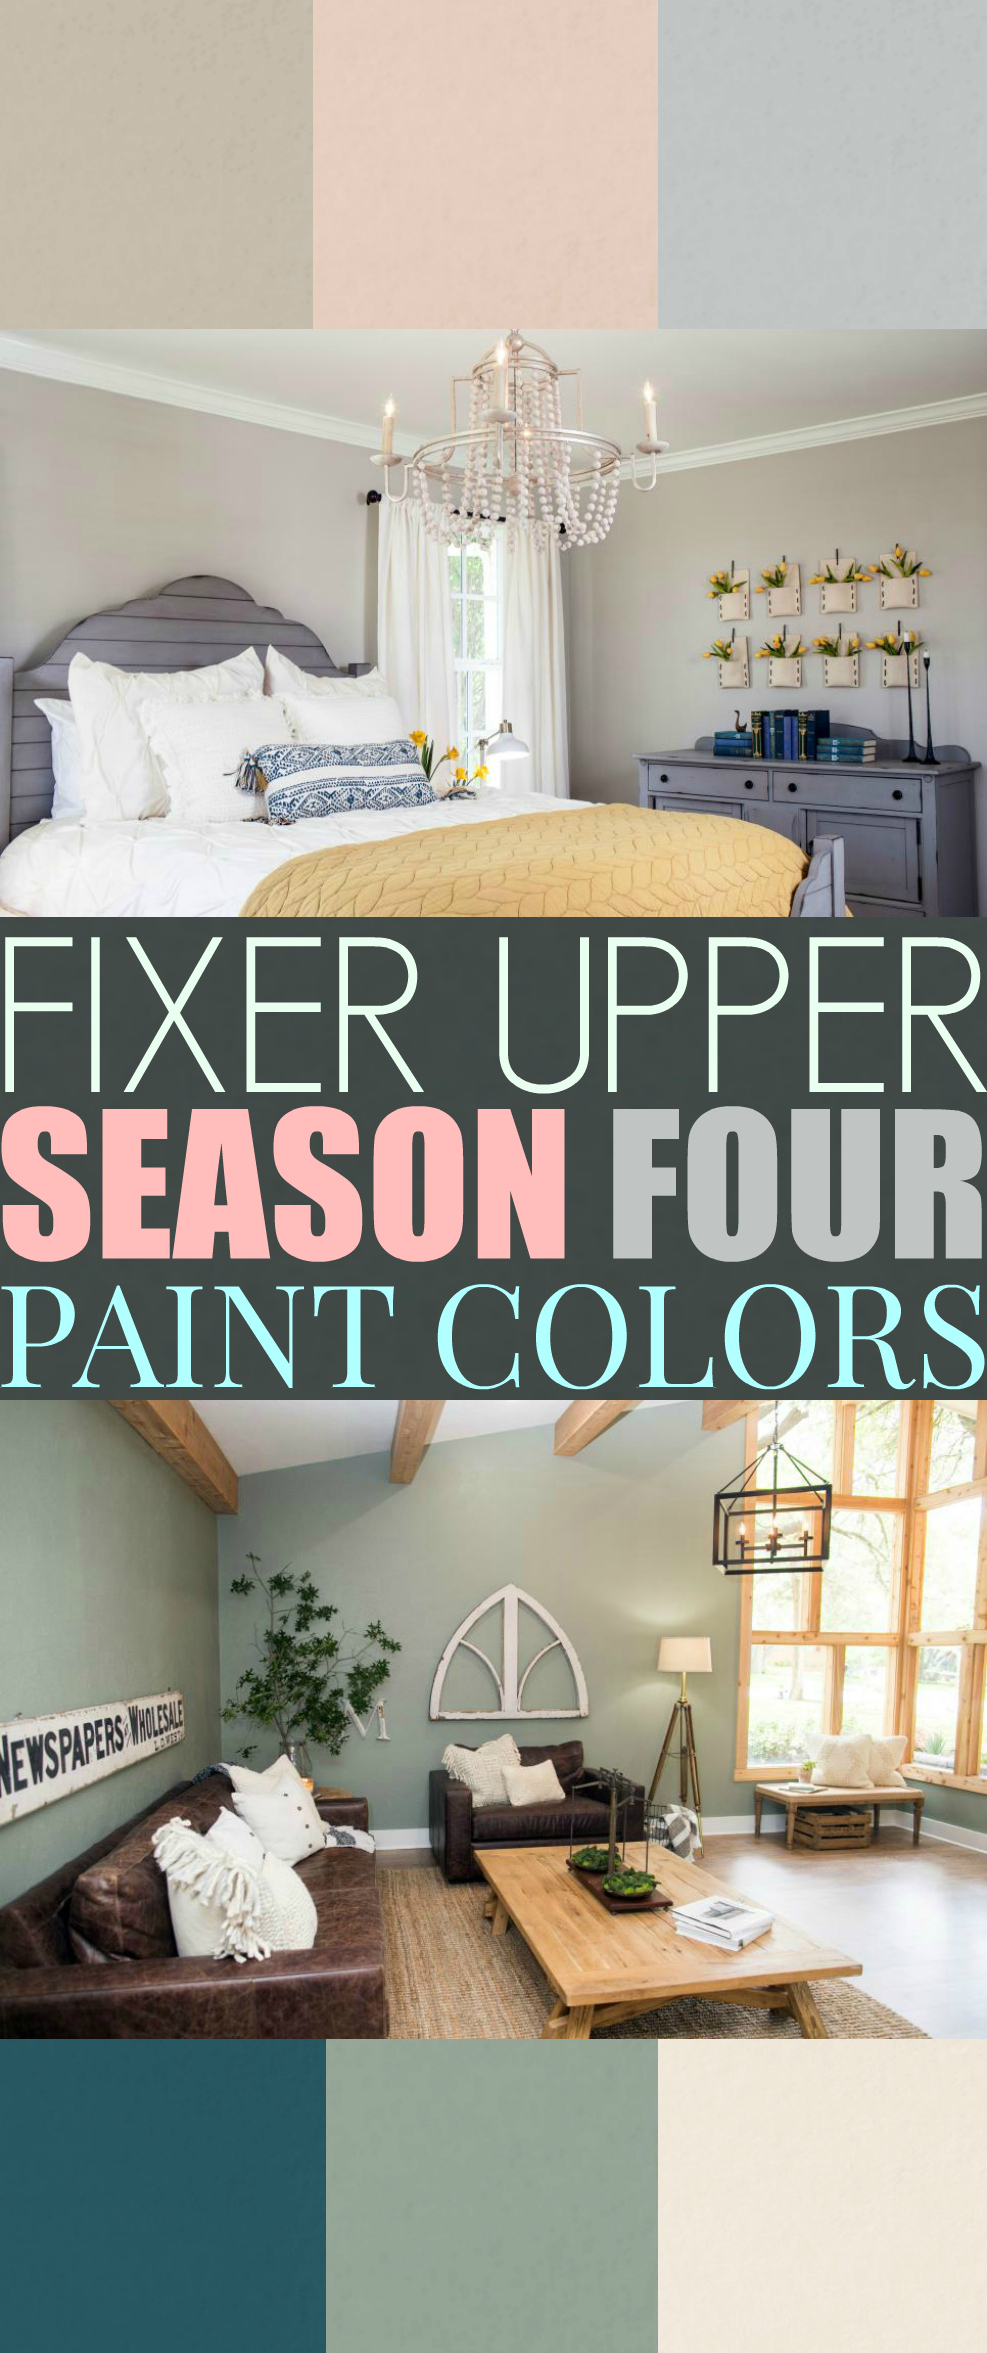 fixer-upper-season-4-paint-colors